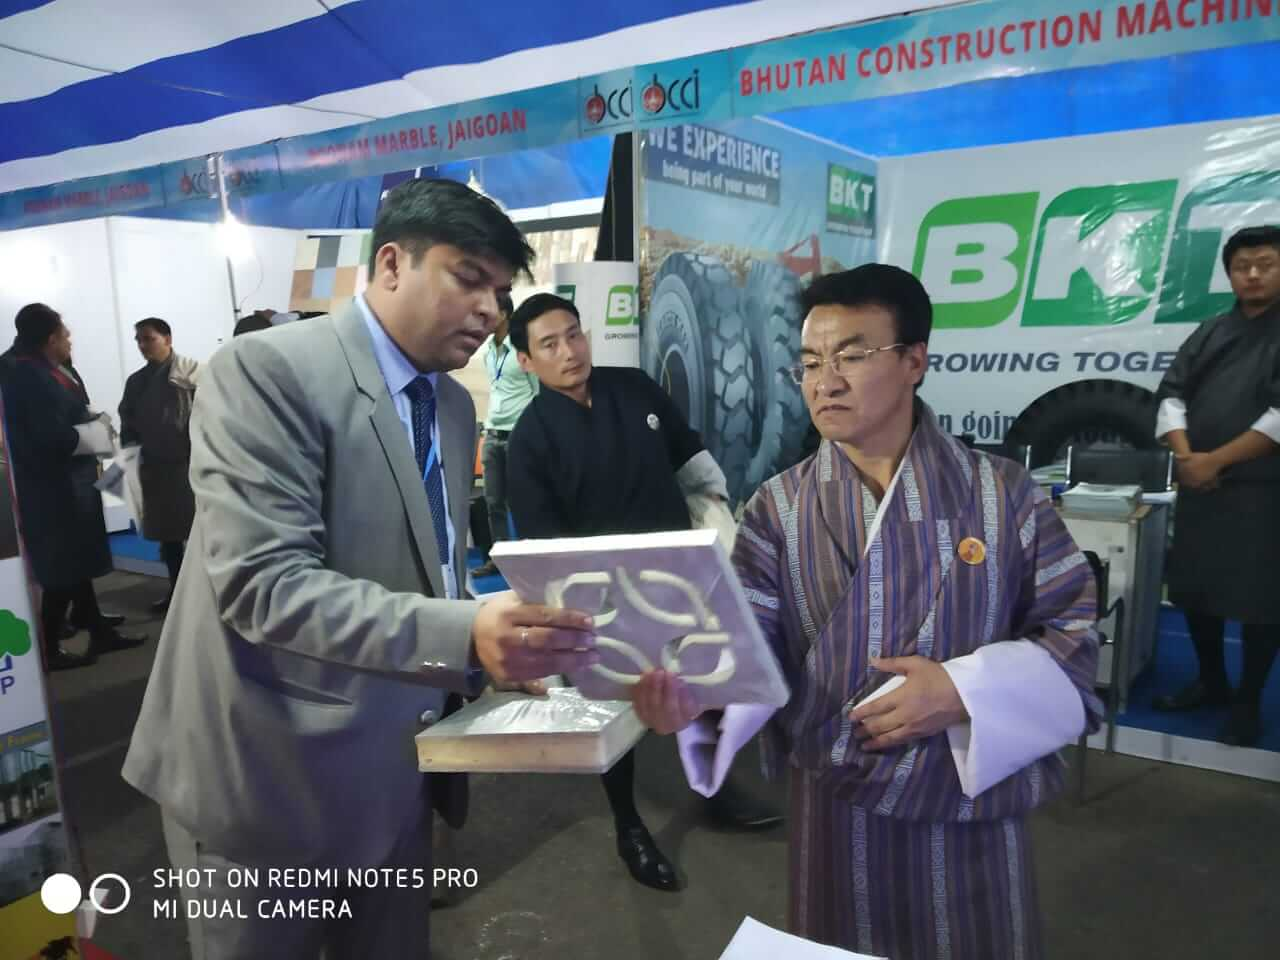 Construction_Expo_2018_-_Participants_from_INDIA,_NEPAL,_BANGALADESH_and_BHUTAN<br>6